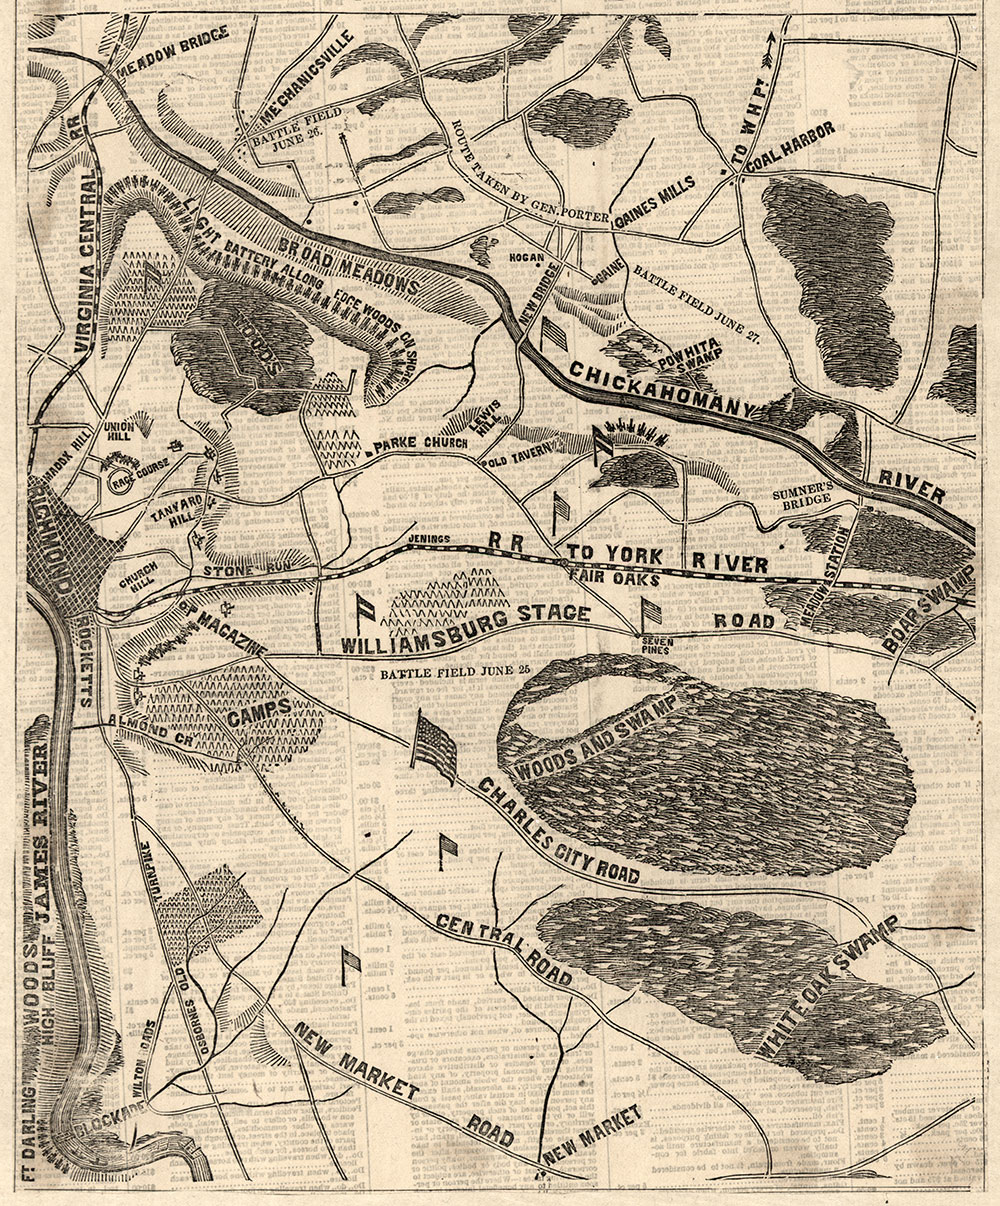 The region east of Richmond shows the location of battlefields on June 25, 26, and 27. It appeared in the July 2, 1862, edition of the Philadelphia Inquirer. Library of Congress.